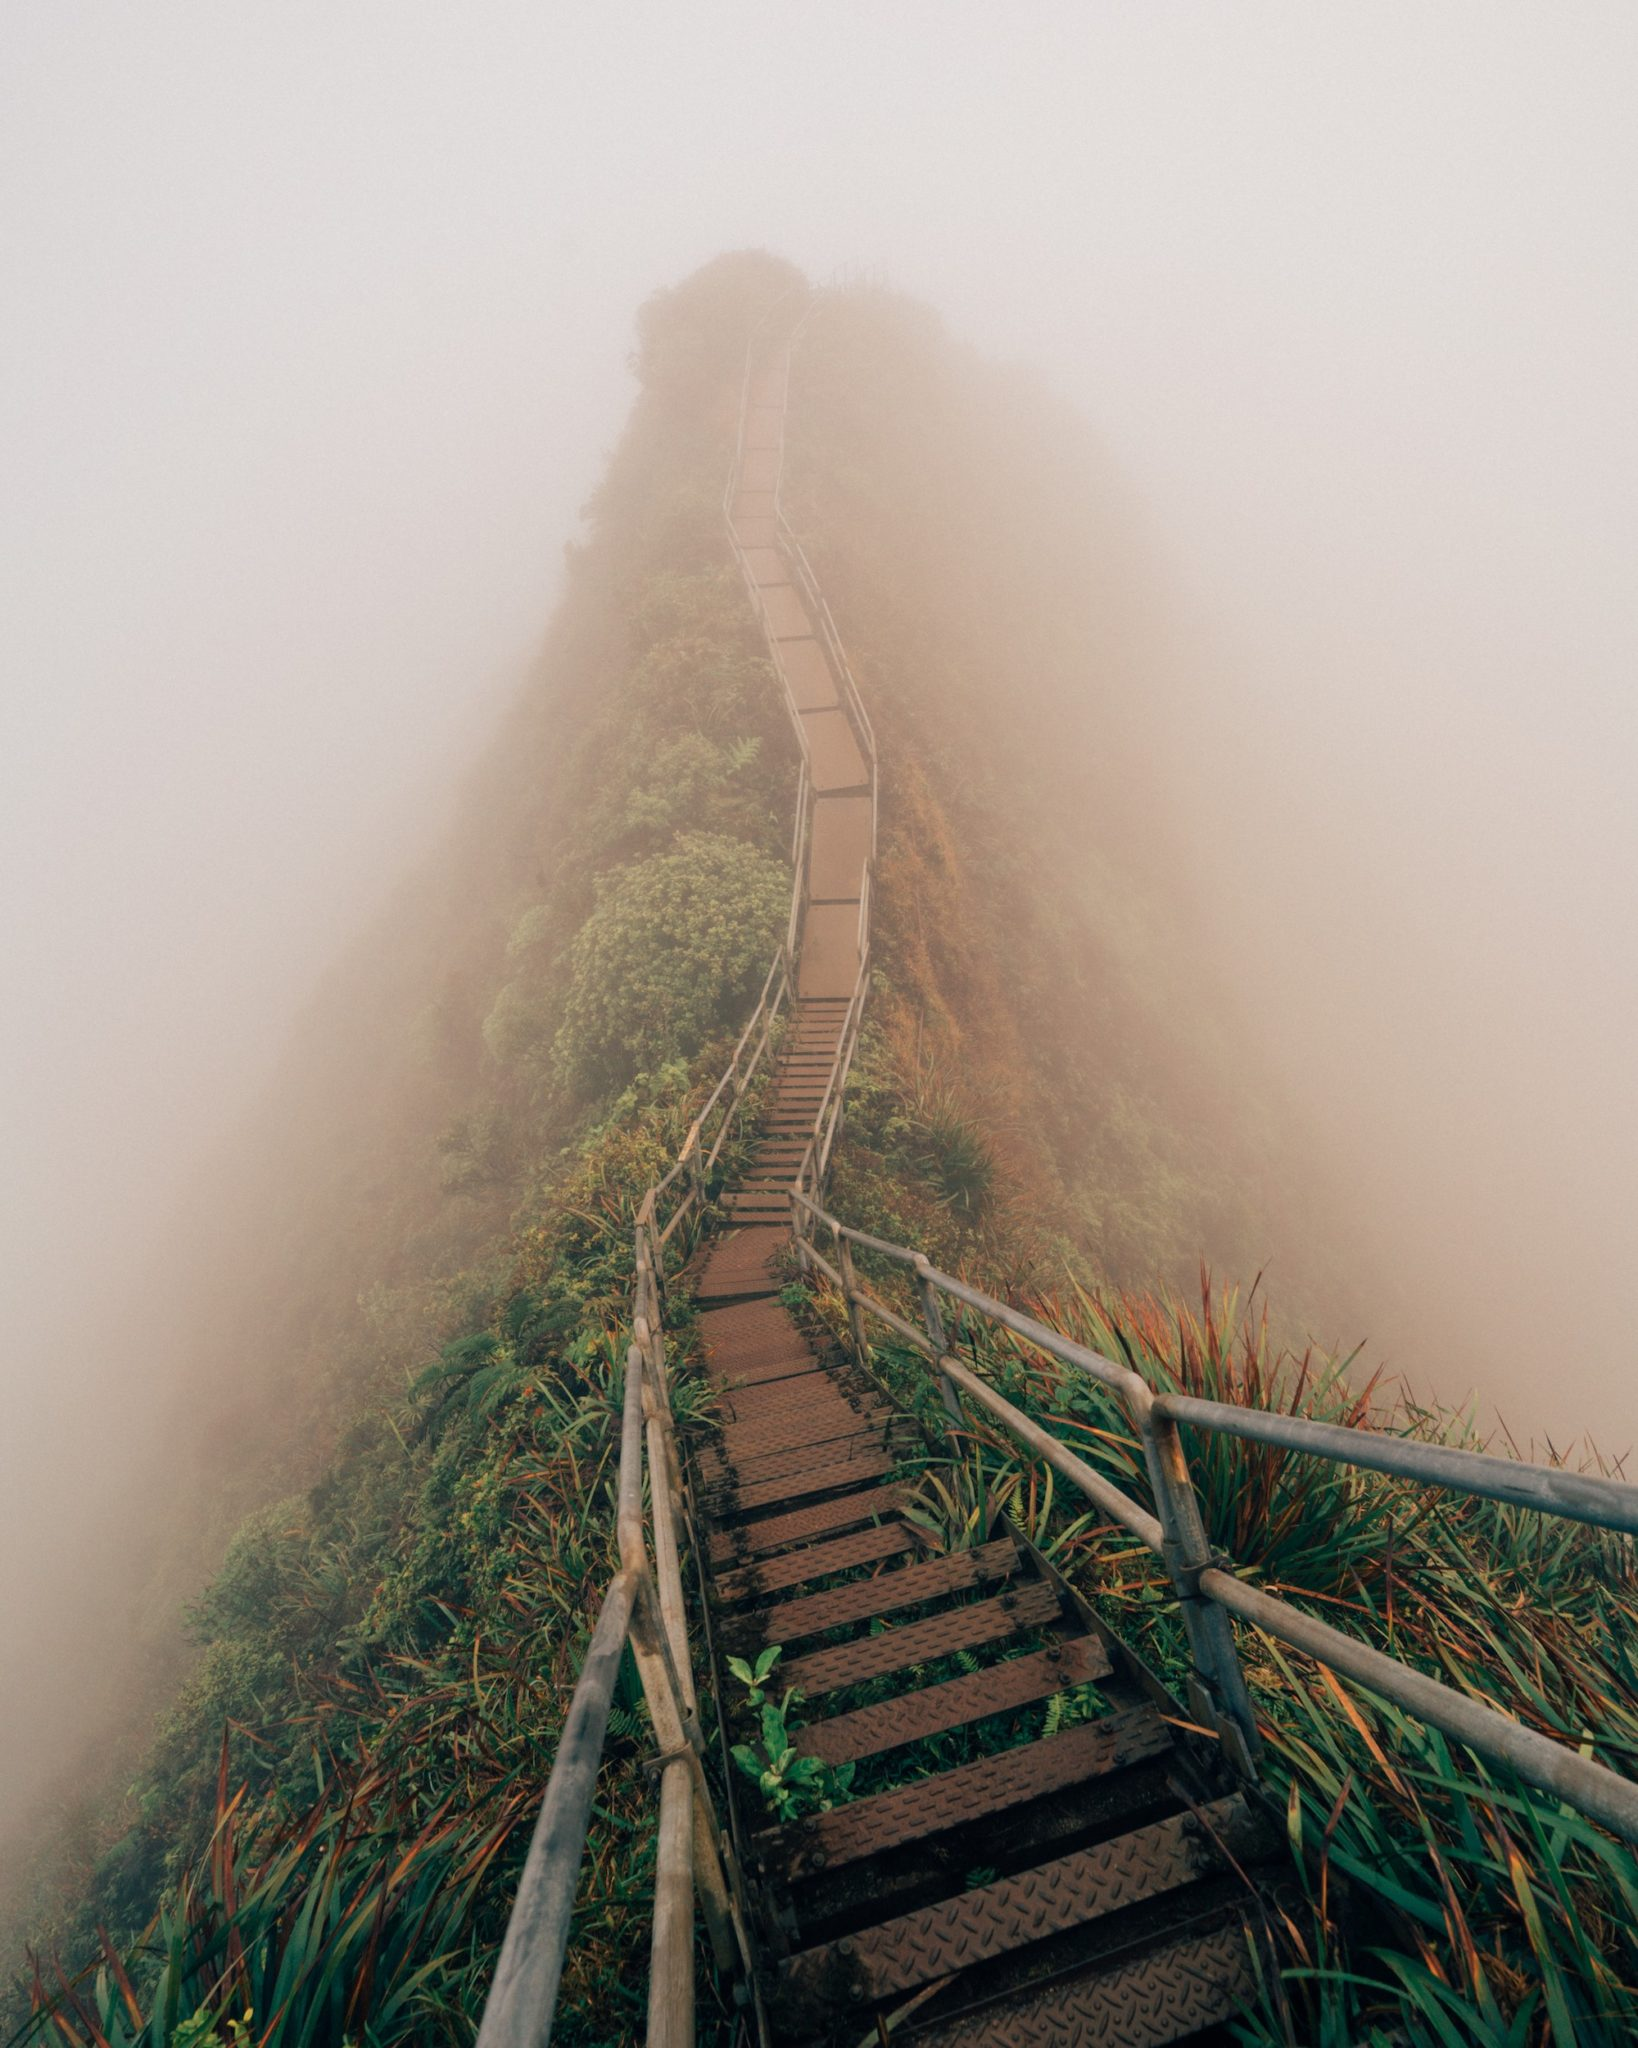 Stairway to Heaven advise